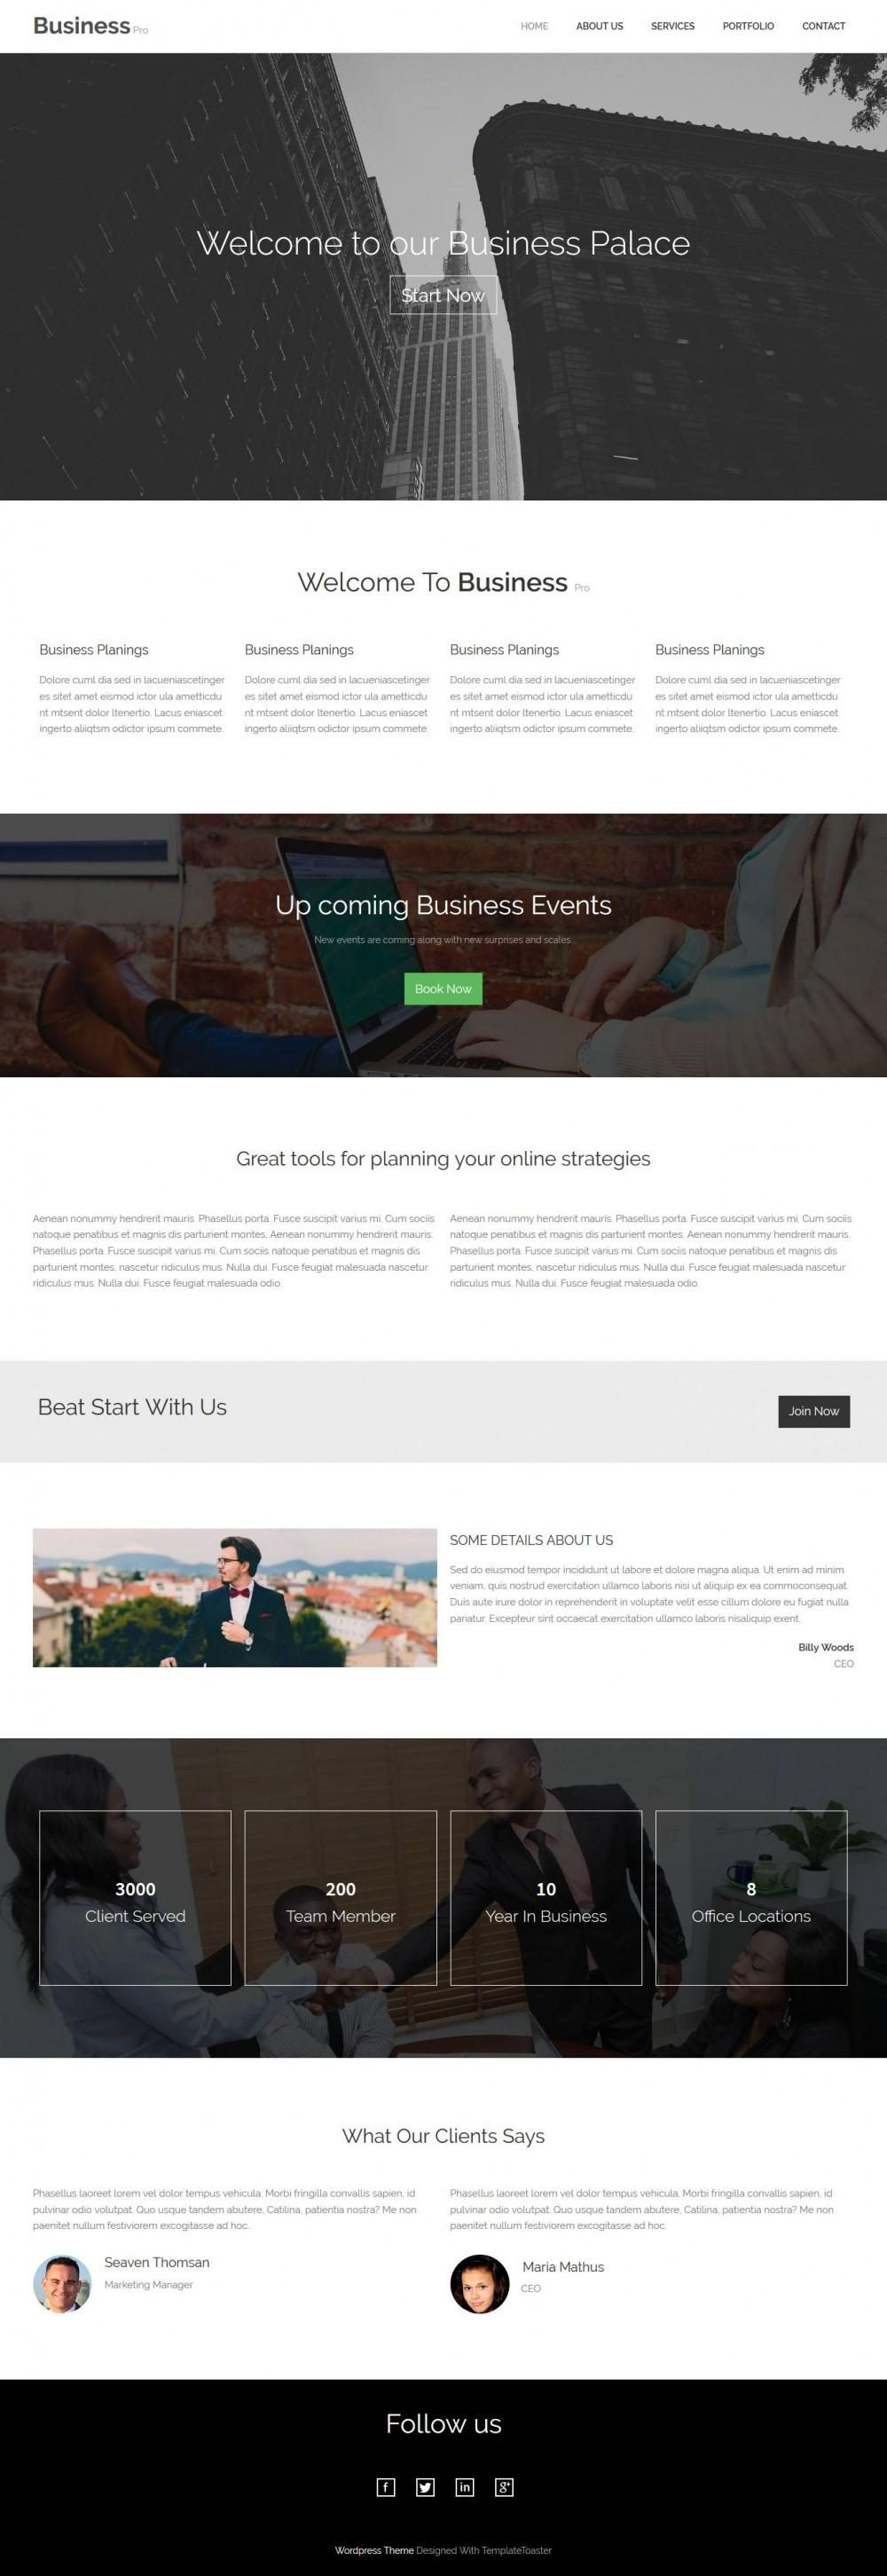 Business Consultant - Marketing And Business Consultant WordPress Theme